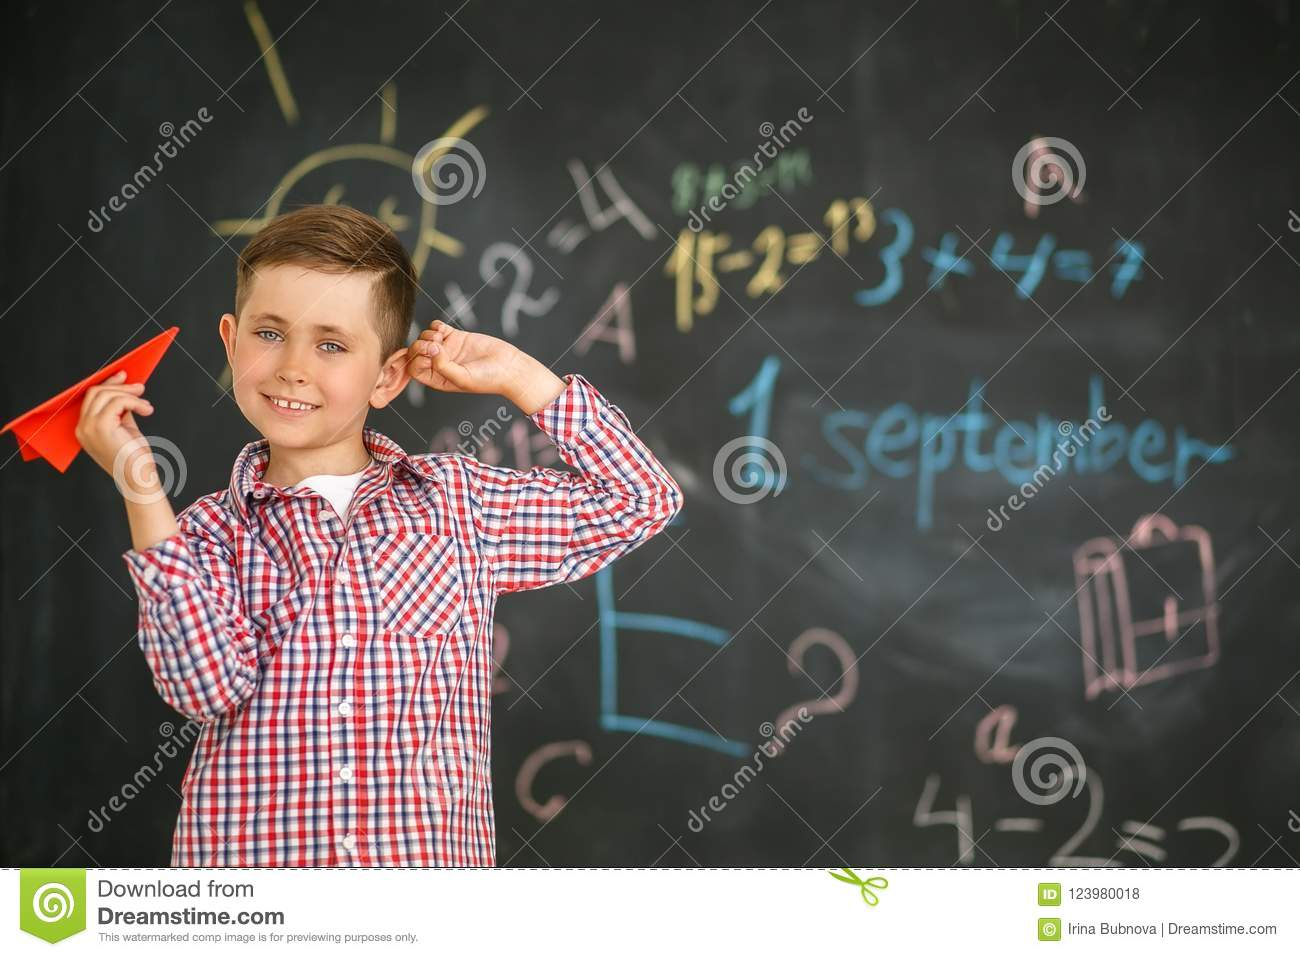 A schoolboy holding a red airplane in the hands of a training board